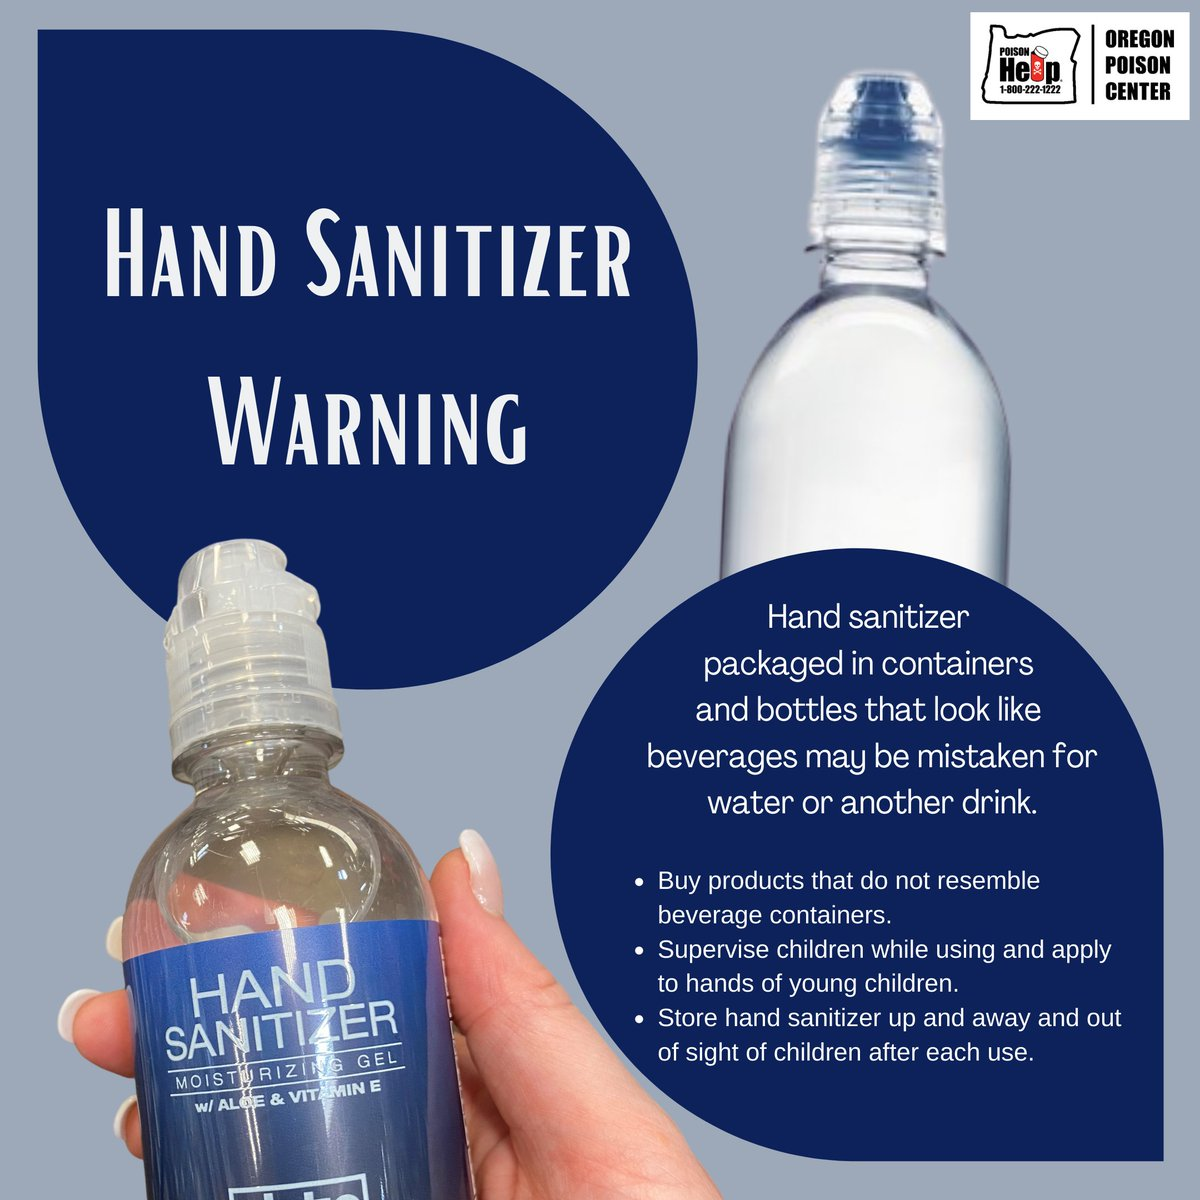 Lookalike products can lead to poisonings! Be aware of confusing packaging and call us at 1-800-222-1222 for accidental poisonings.